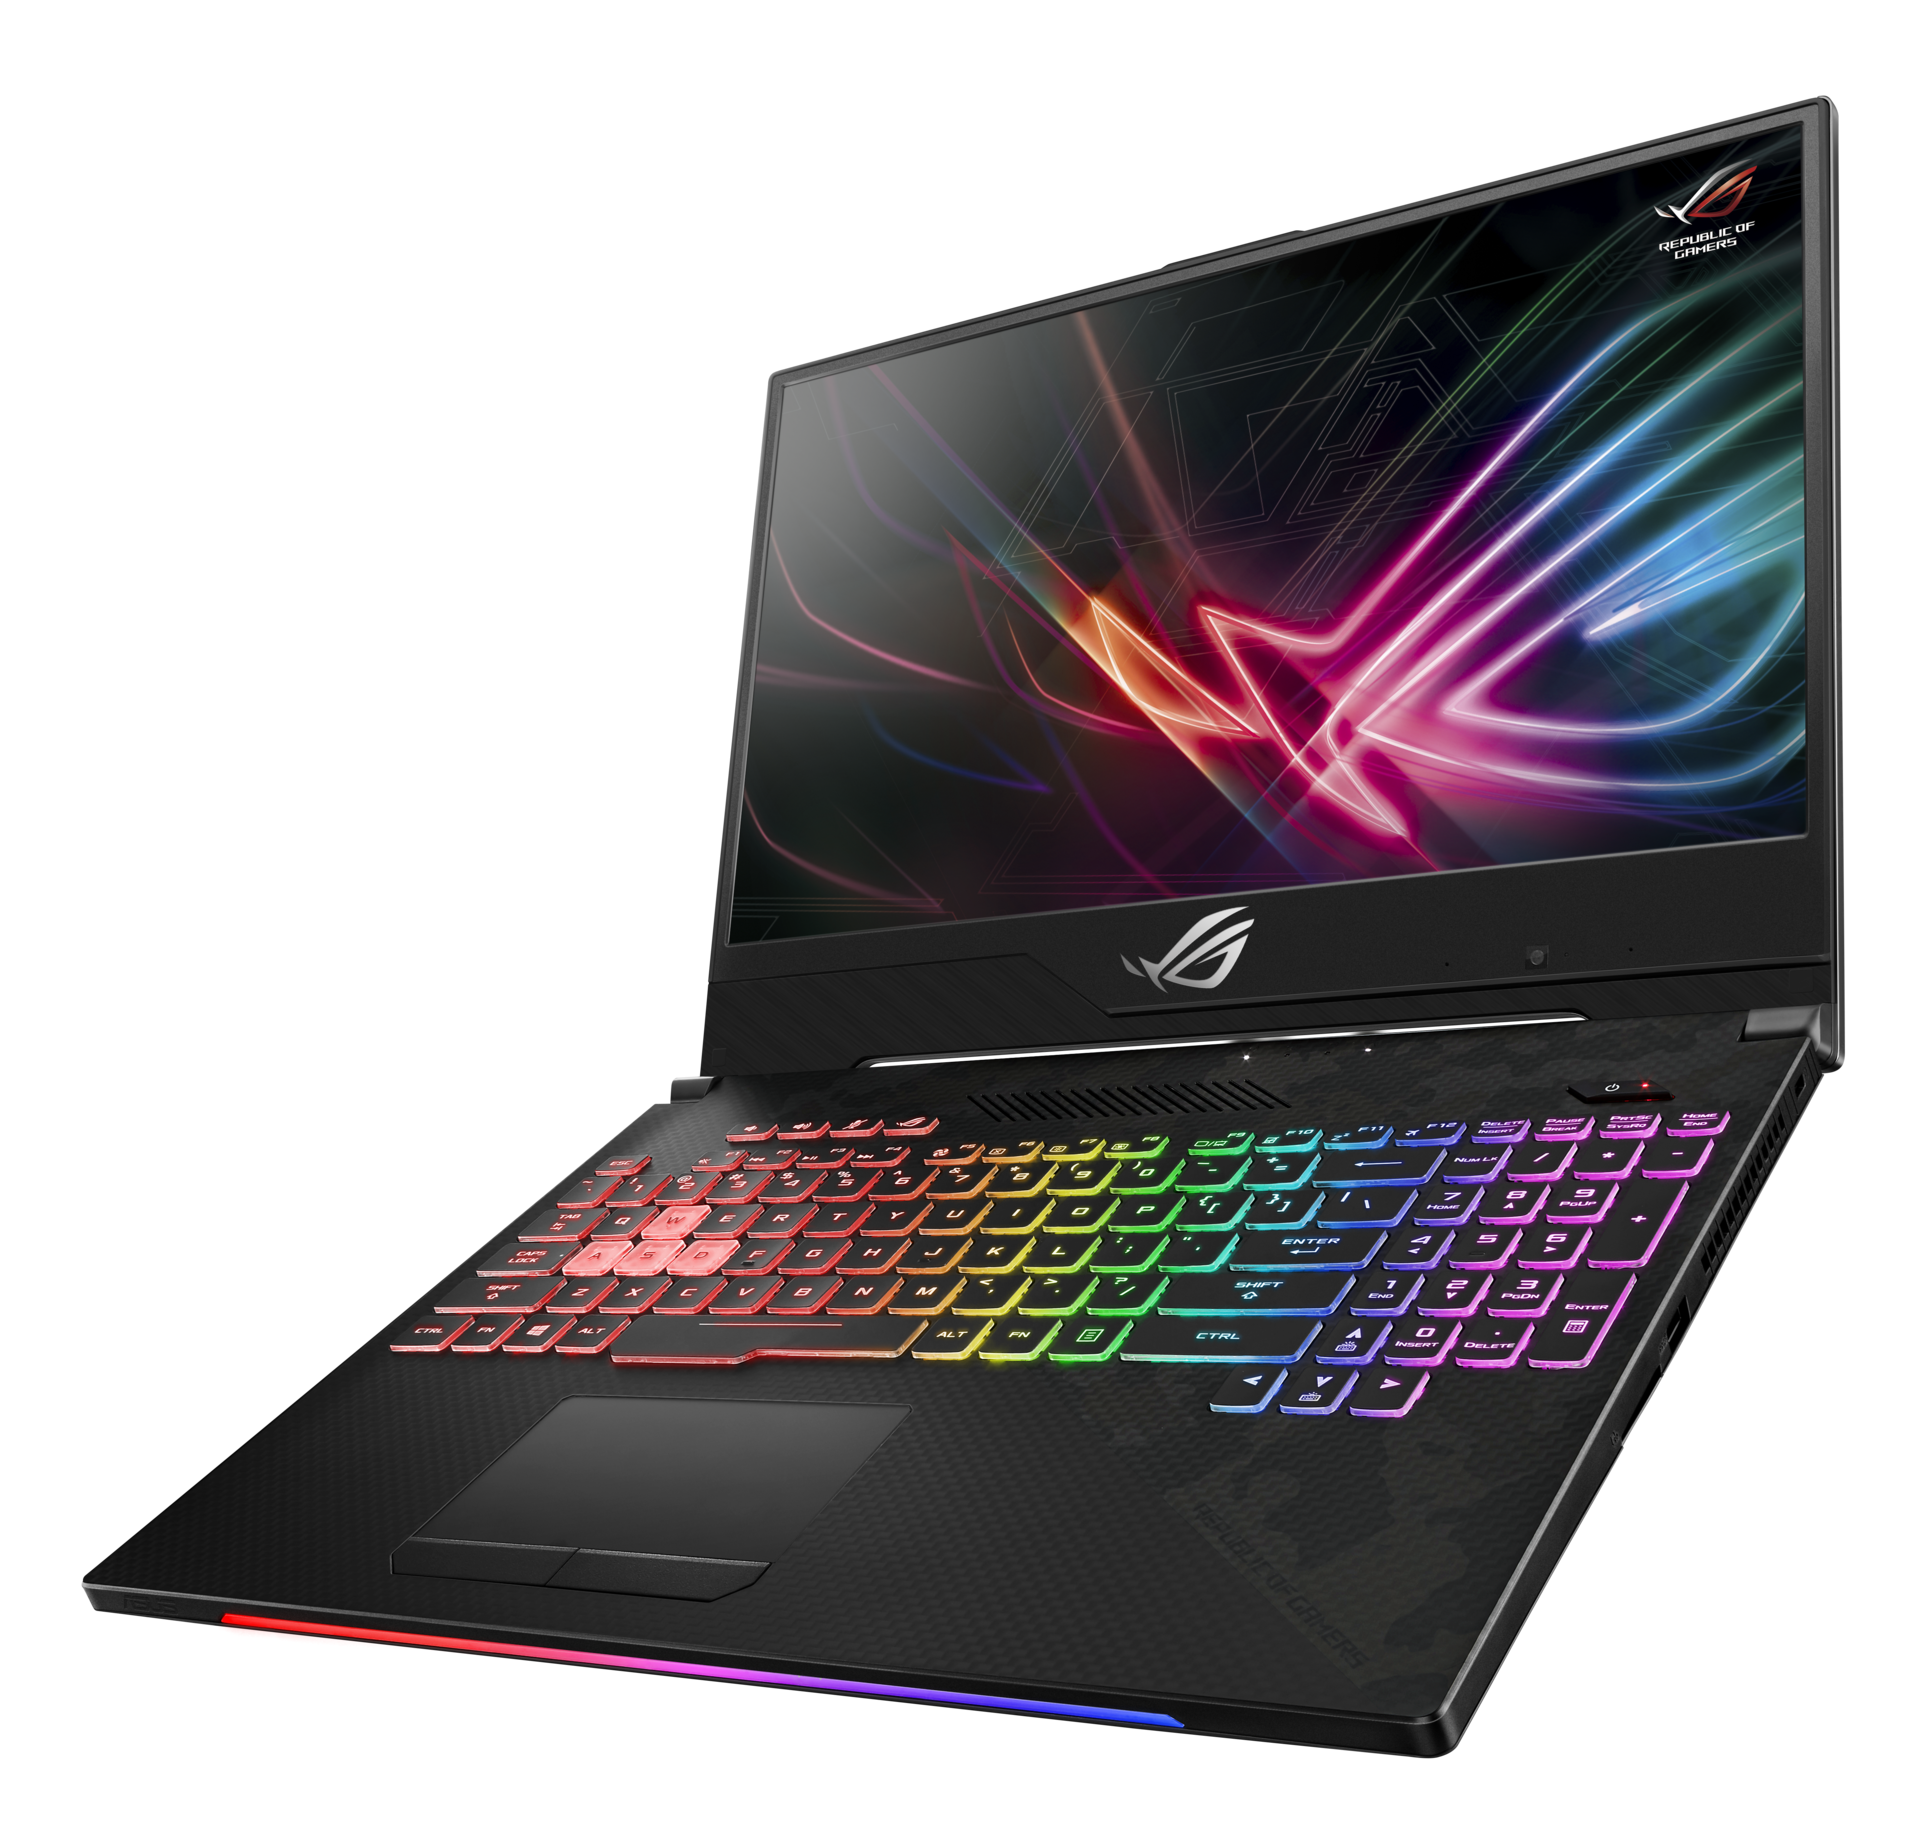 ASUS Republic of Gamers prezentuje laptopy Strix SCAR Edition i Hero Edition